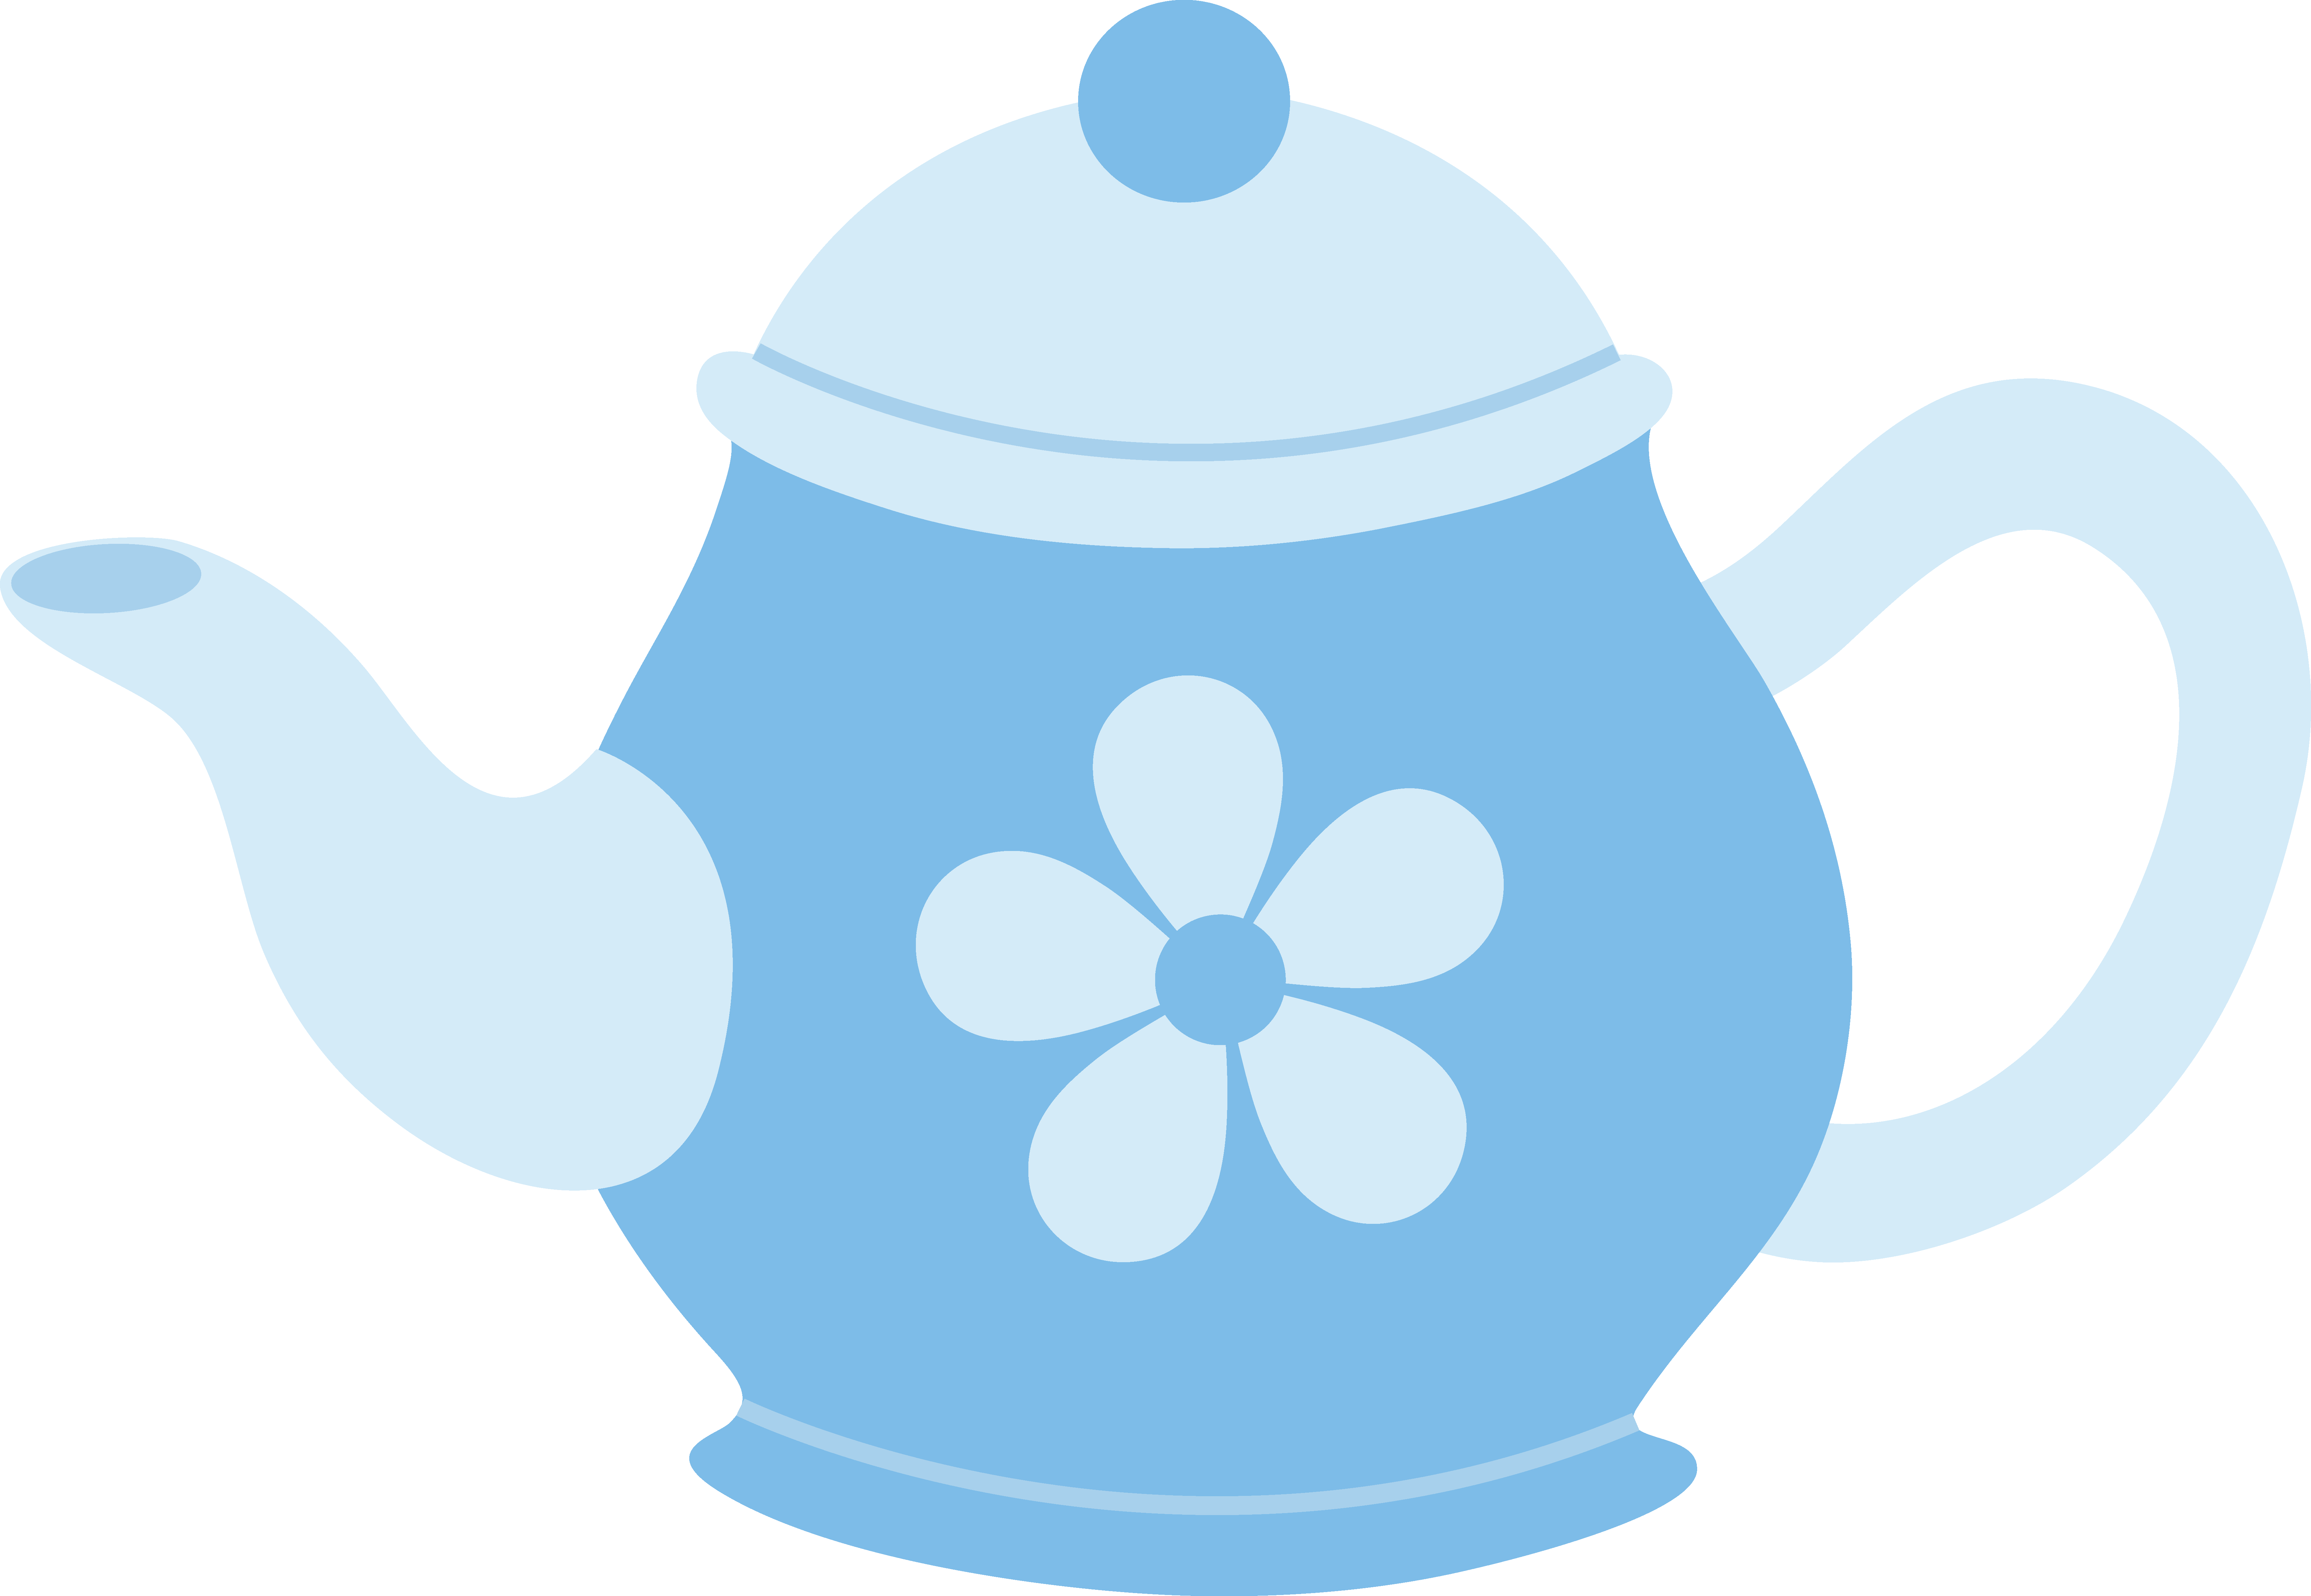 Kettle drawing mad hatter. Blue teapot with flower